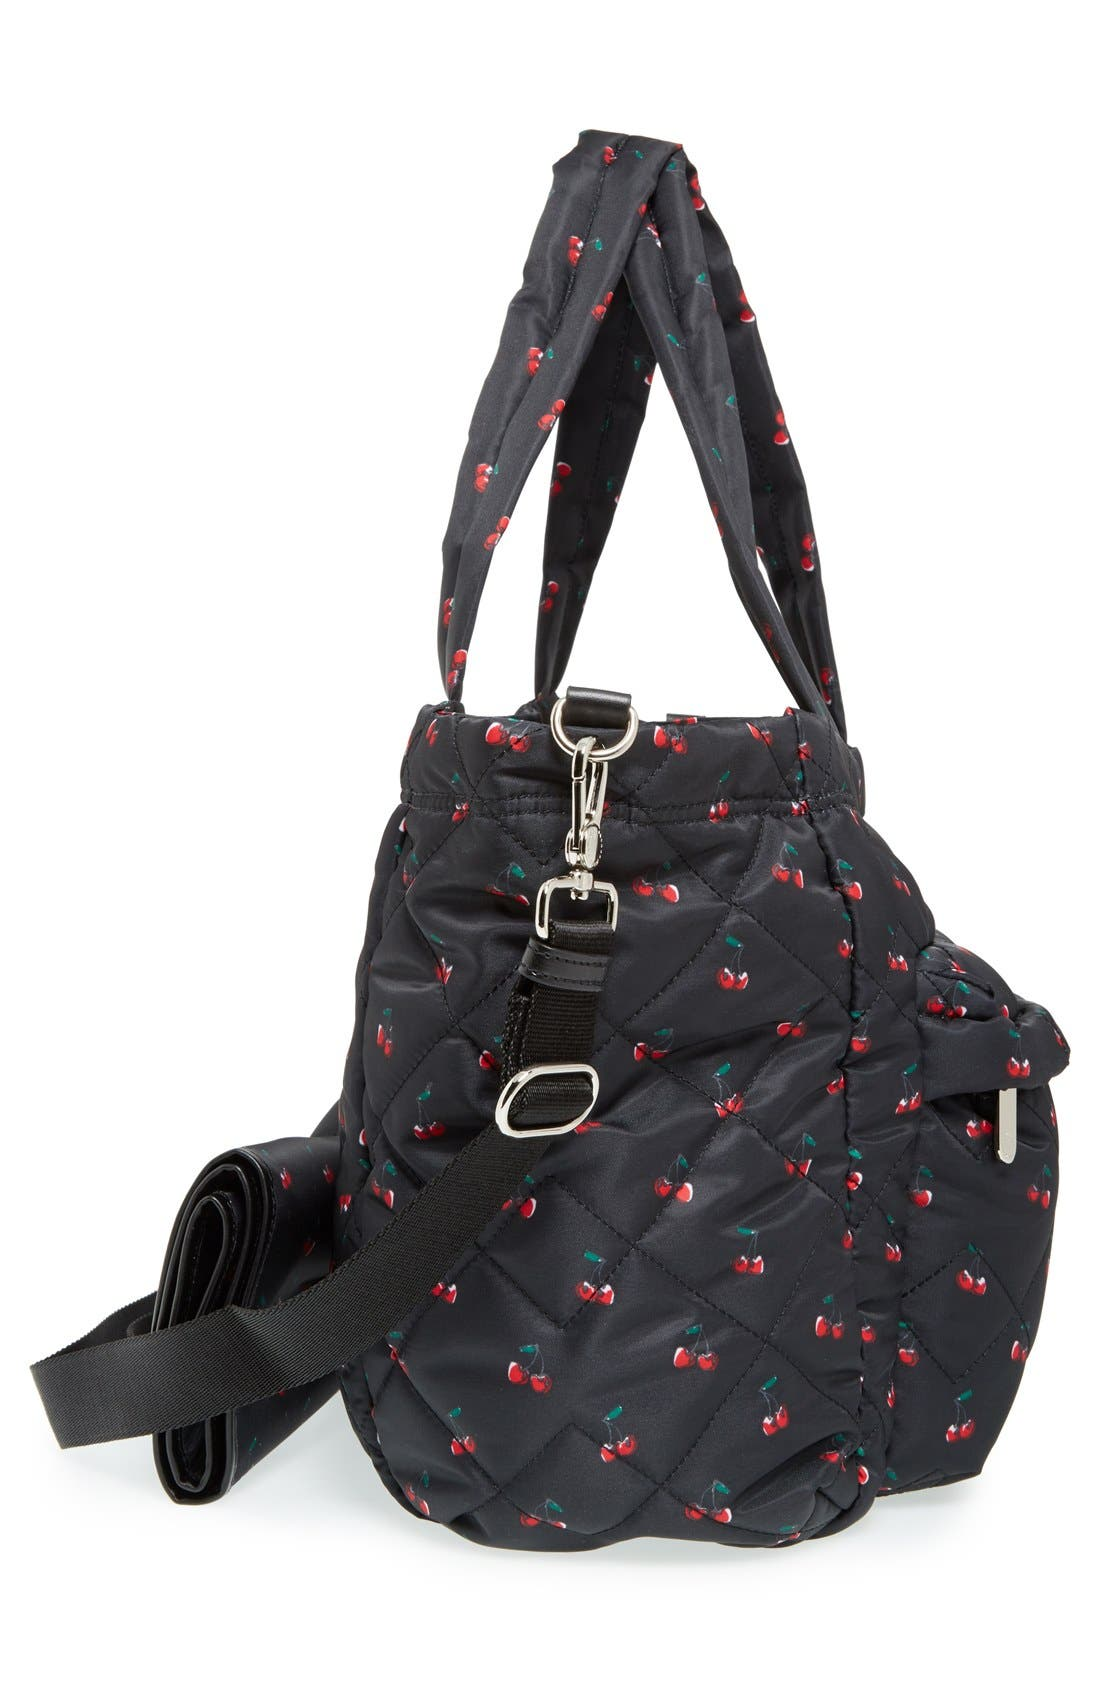 MARC JACOBS,                             MARC BY MARC JACOBS 'Crosby - Elizababy' Quilted Fruit Print Diaper Bag,                             Alternate thumbnail 3, color,                             001